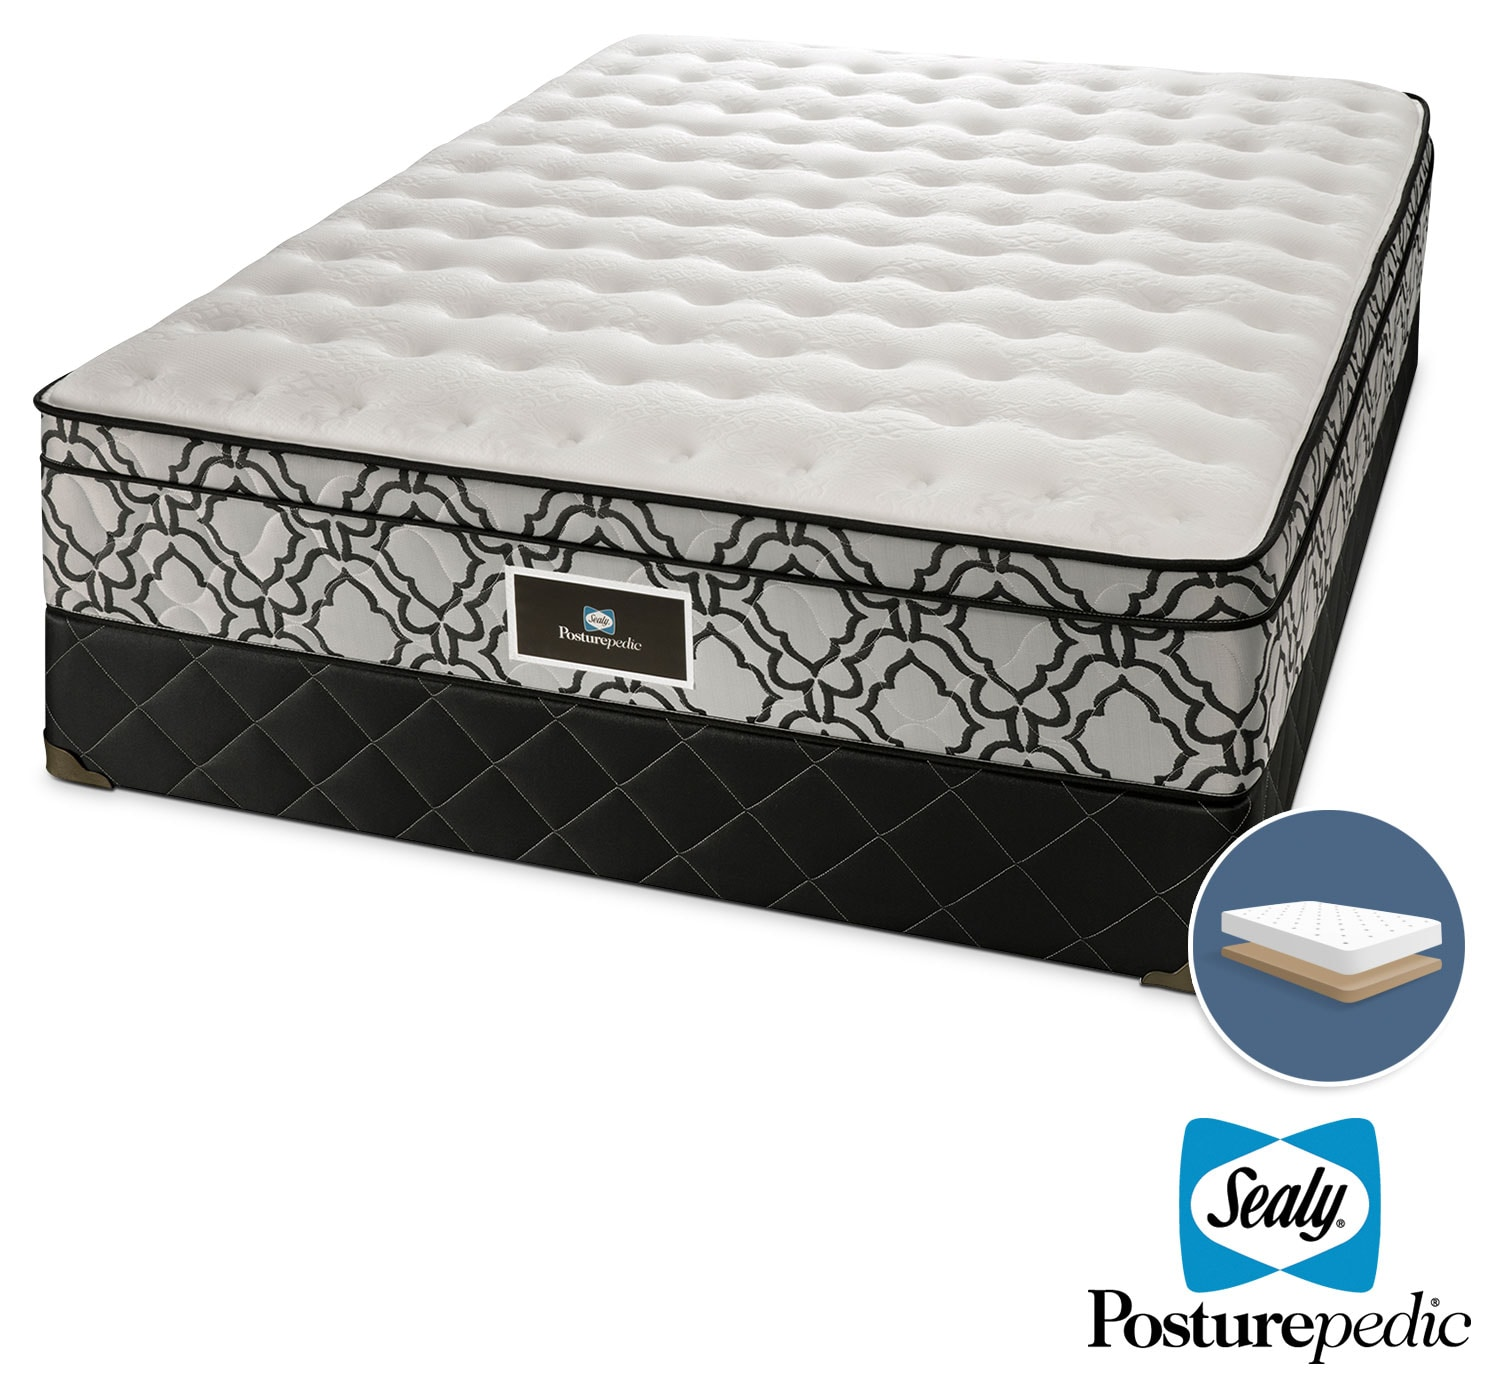 Mattresses and Bedding - Sealy Colosseum Cushion Firm Queen Mattress and Low-Profile Boxspring Set